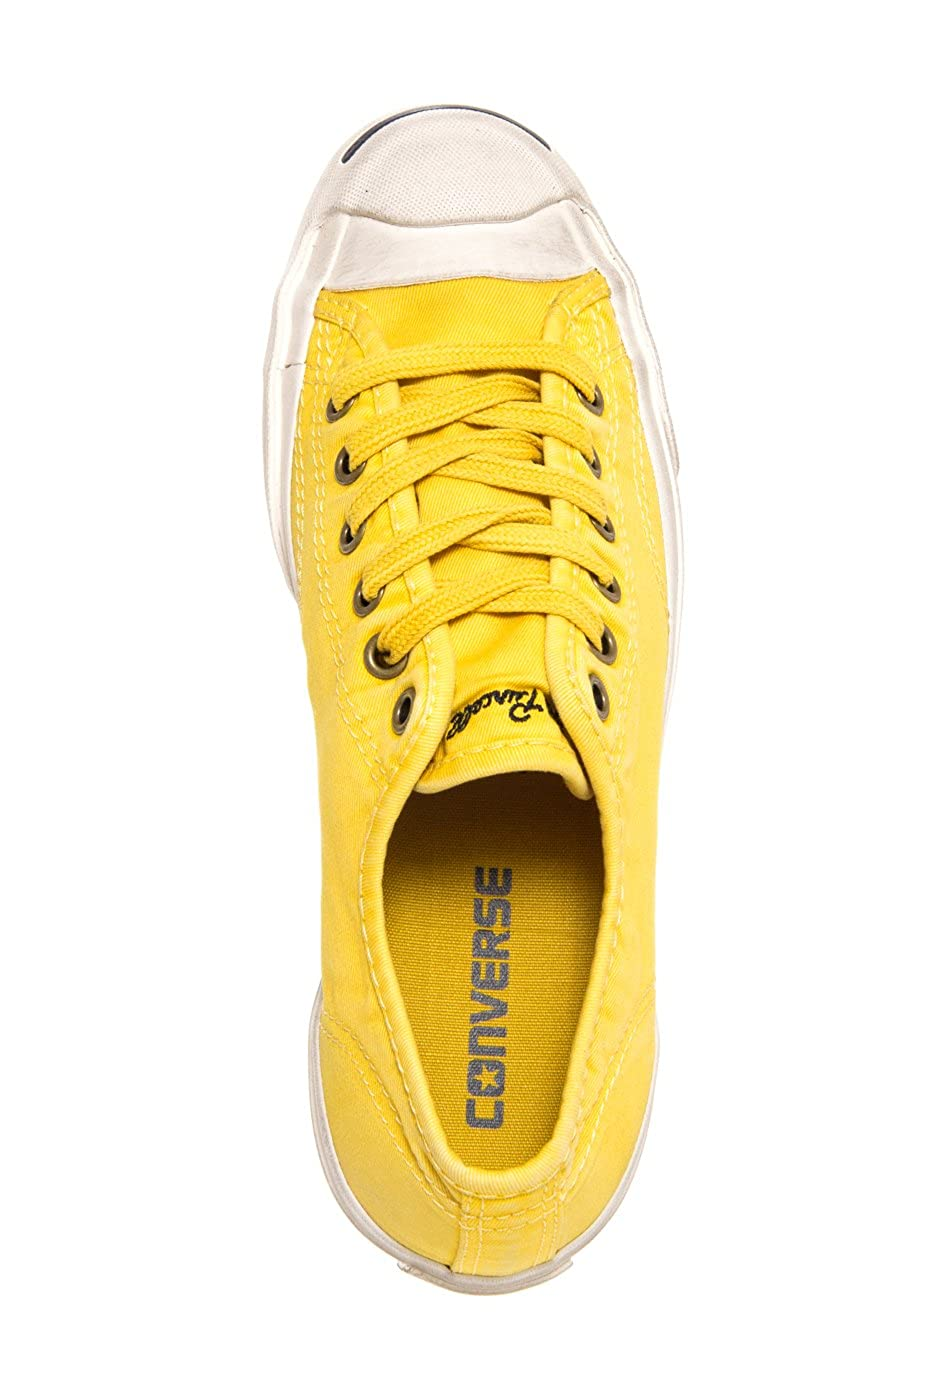 902b334b03f0fb Converse Jack Purcell OX Golden Flame  Amazon.co.uk  Shoes   Bags